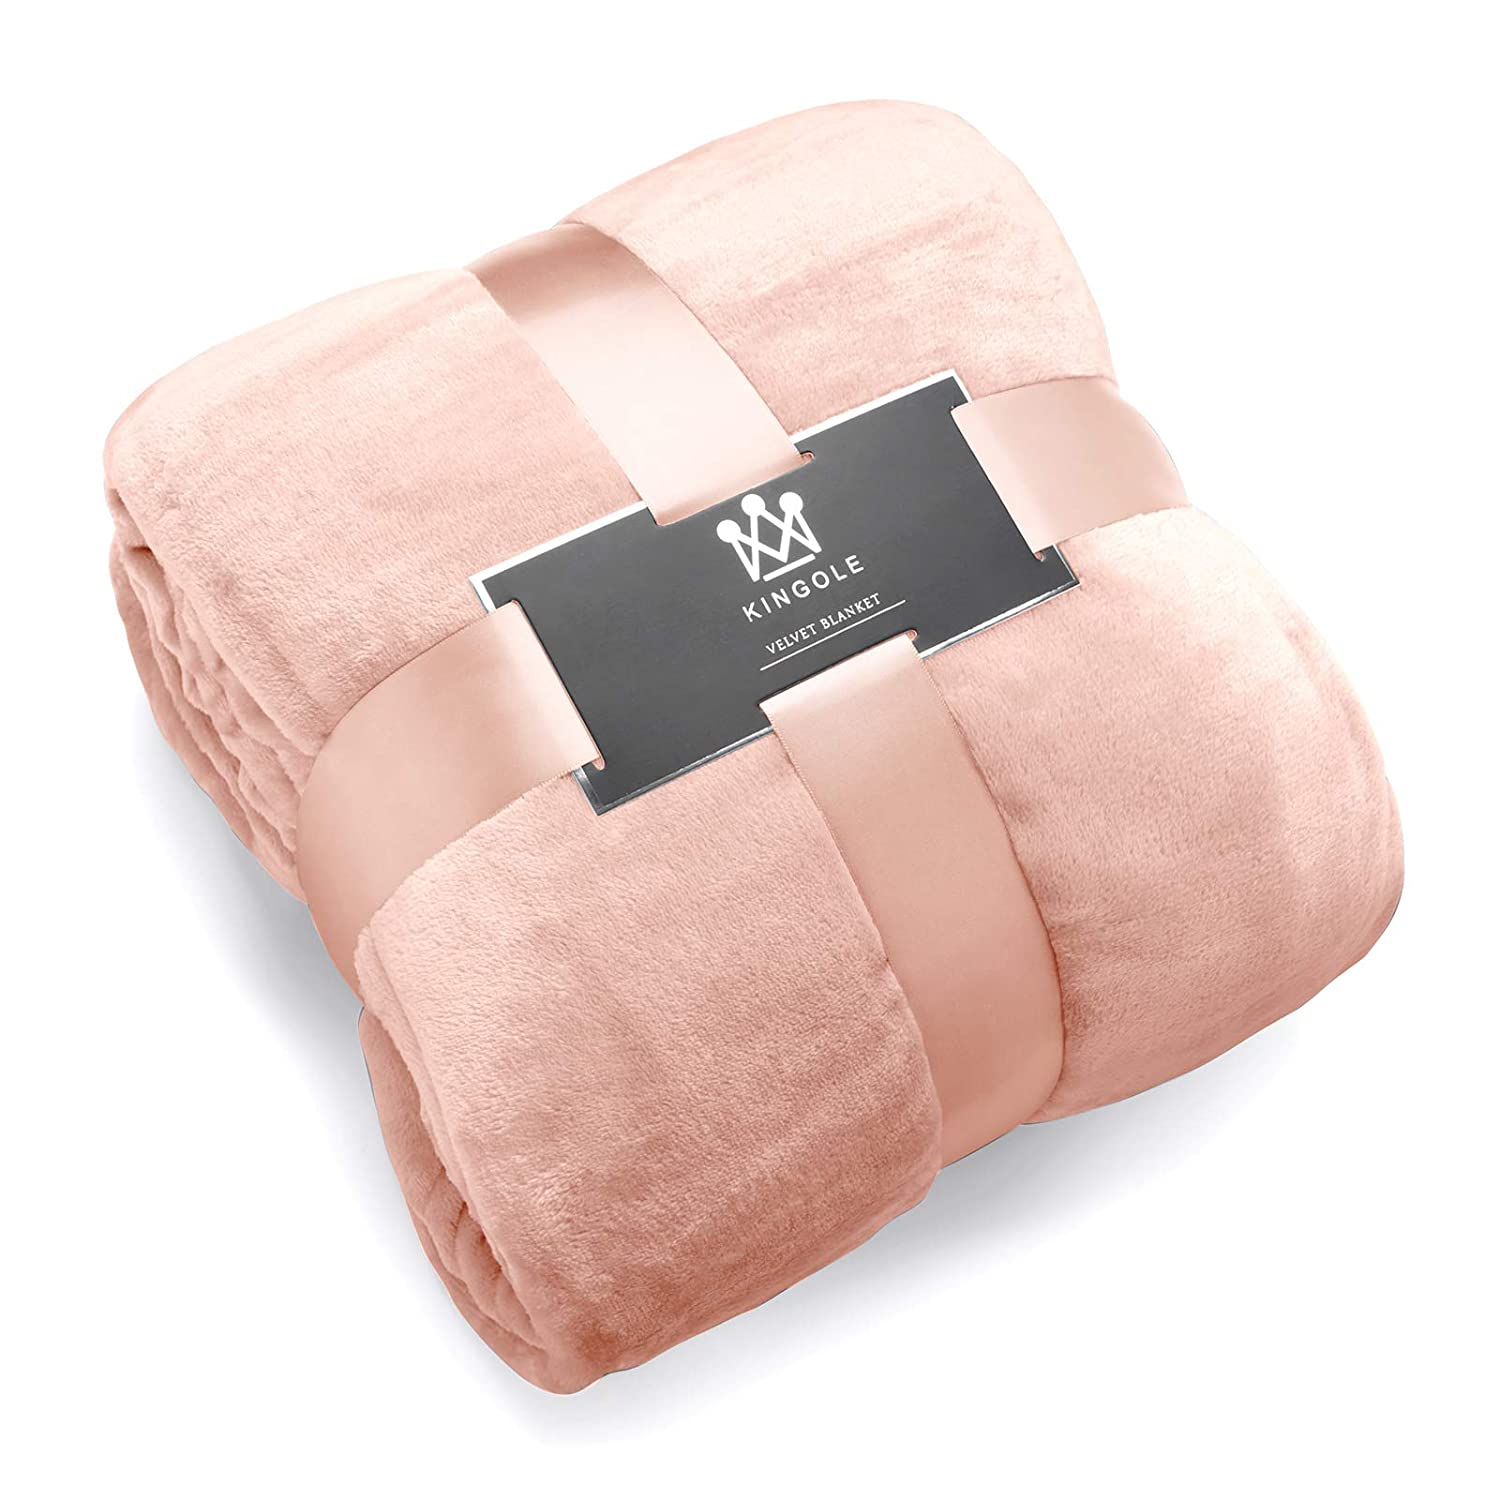 Kingole Flannel Fleece Microfiber Throw Blanket, Luxury Timid Pink Twin Size Lightweight Cozy Couch Bed Super Soft and Warm Plush Solid Color 350GSM (66 x 90 inches)